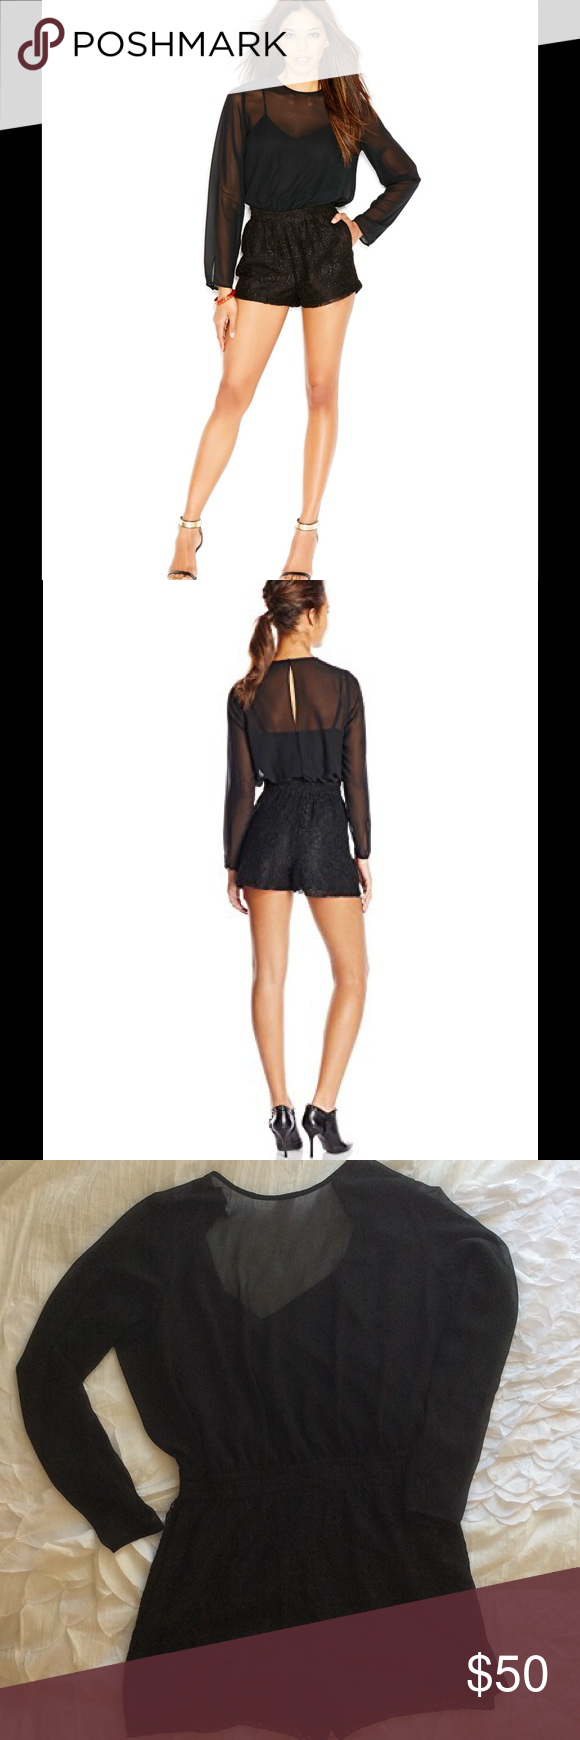 Black illusion-sleeve BCBGeneration romper Black romper from BCBGeneration. Top: black cami covered by see/through fabric with long sleeves. Back is slit, connected with hook and eye closure. Features a flattering gathered waist in the same lace material as bottom half. BCBGeneration Dresses Mini